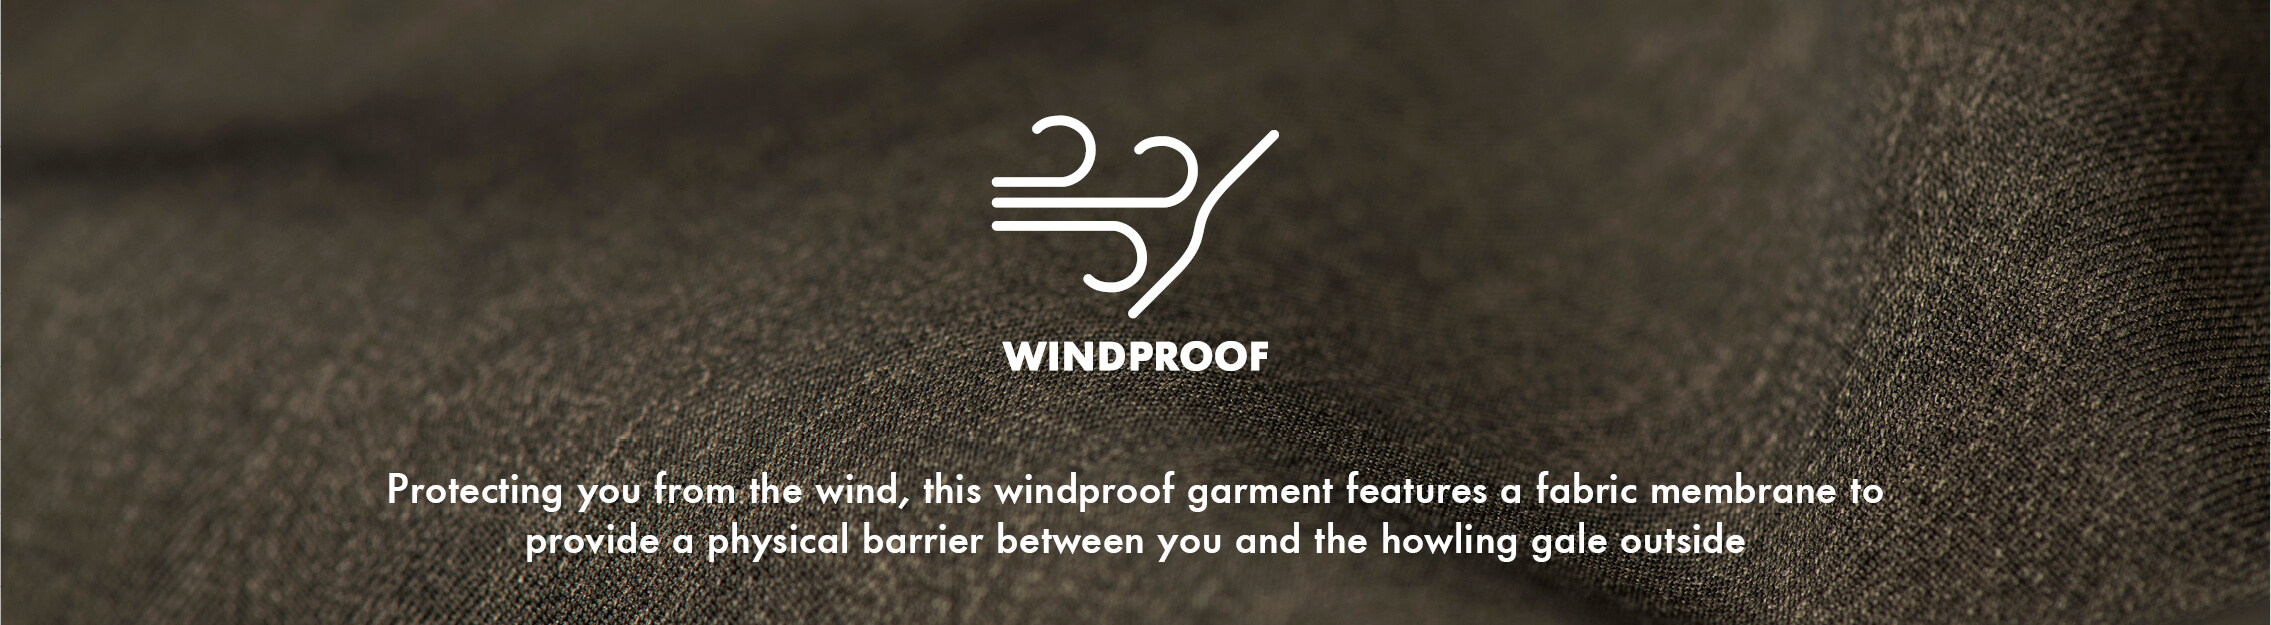 Windproof - Protecting you from the wind...